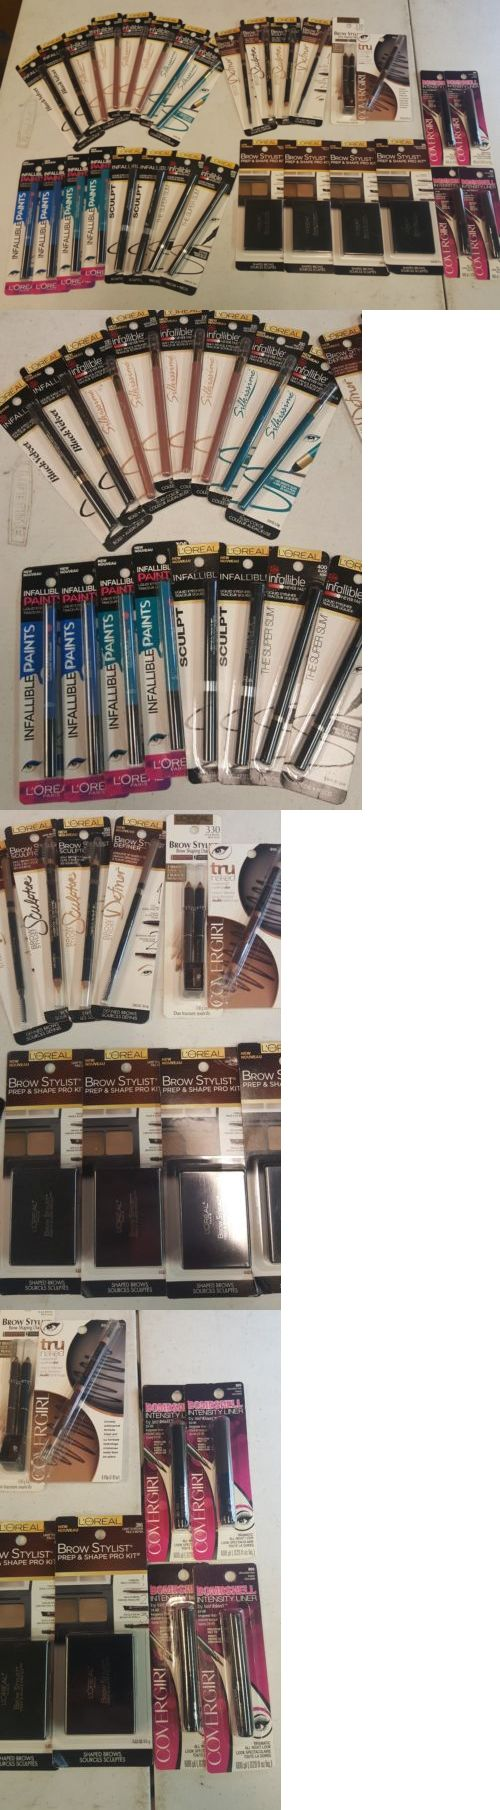 wholesale Makeup: 30 Pc Make-Up Mix Wholesale Lot , L Oreal,Covergirl, Eyeliner And Brow. -> BUY IT NOW ONLY: $69.99 on eBay!